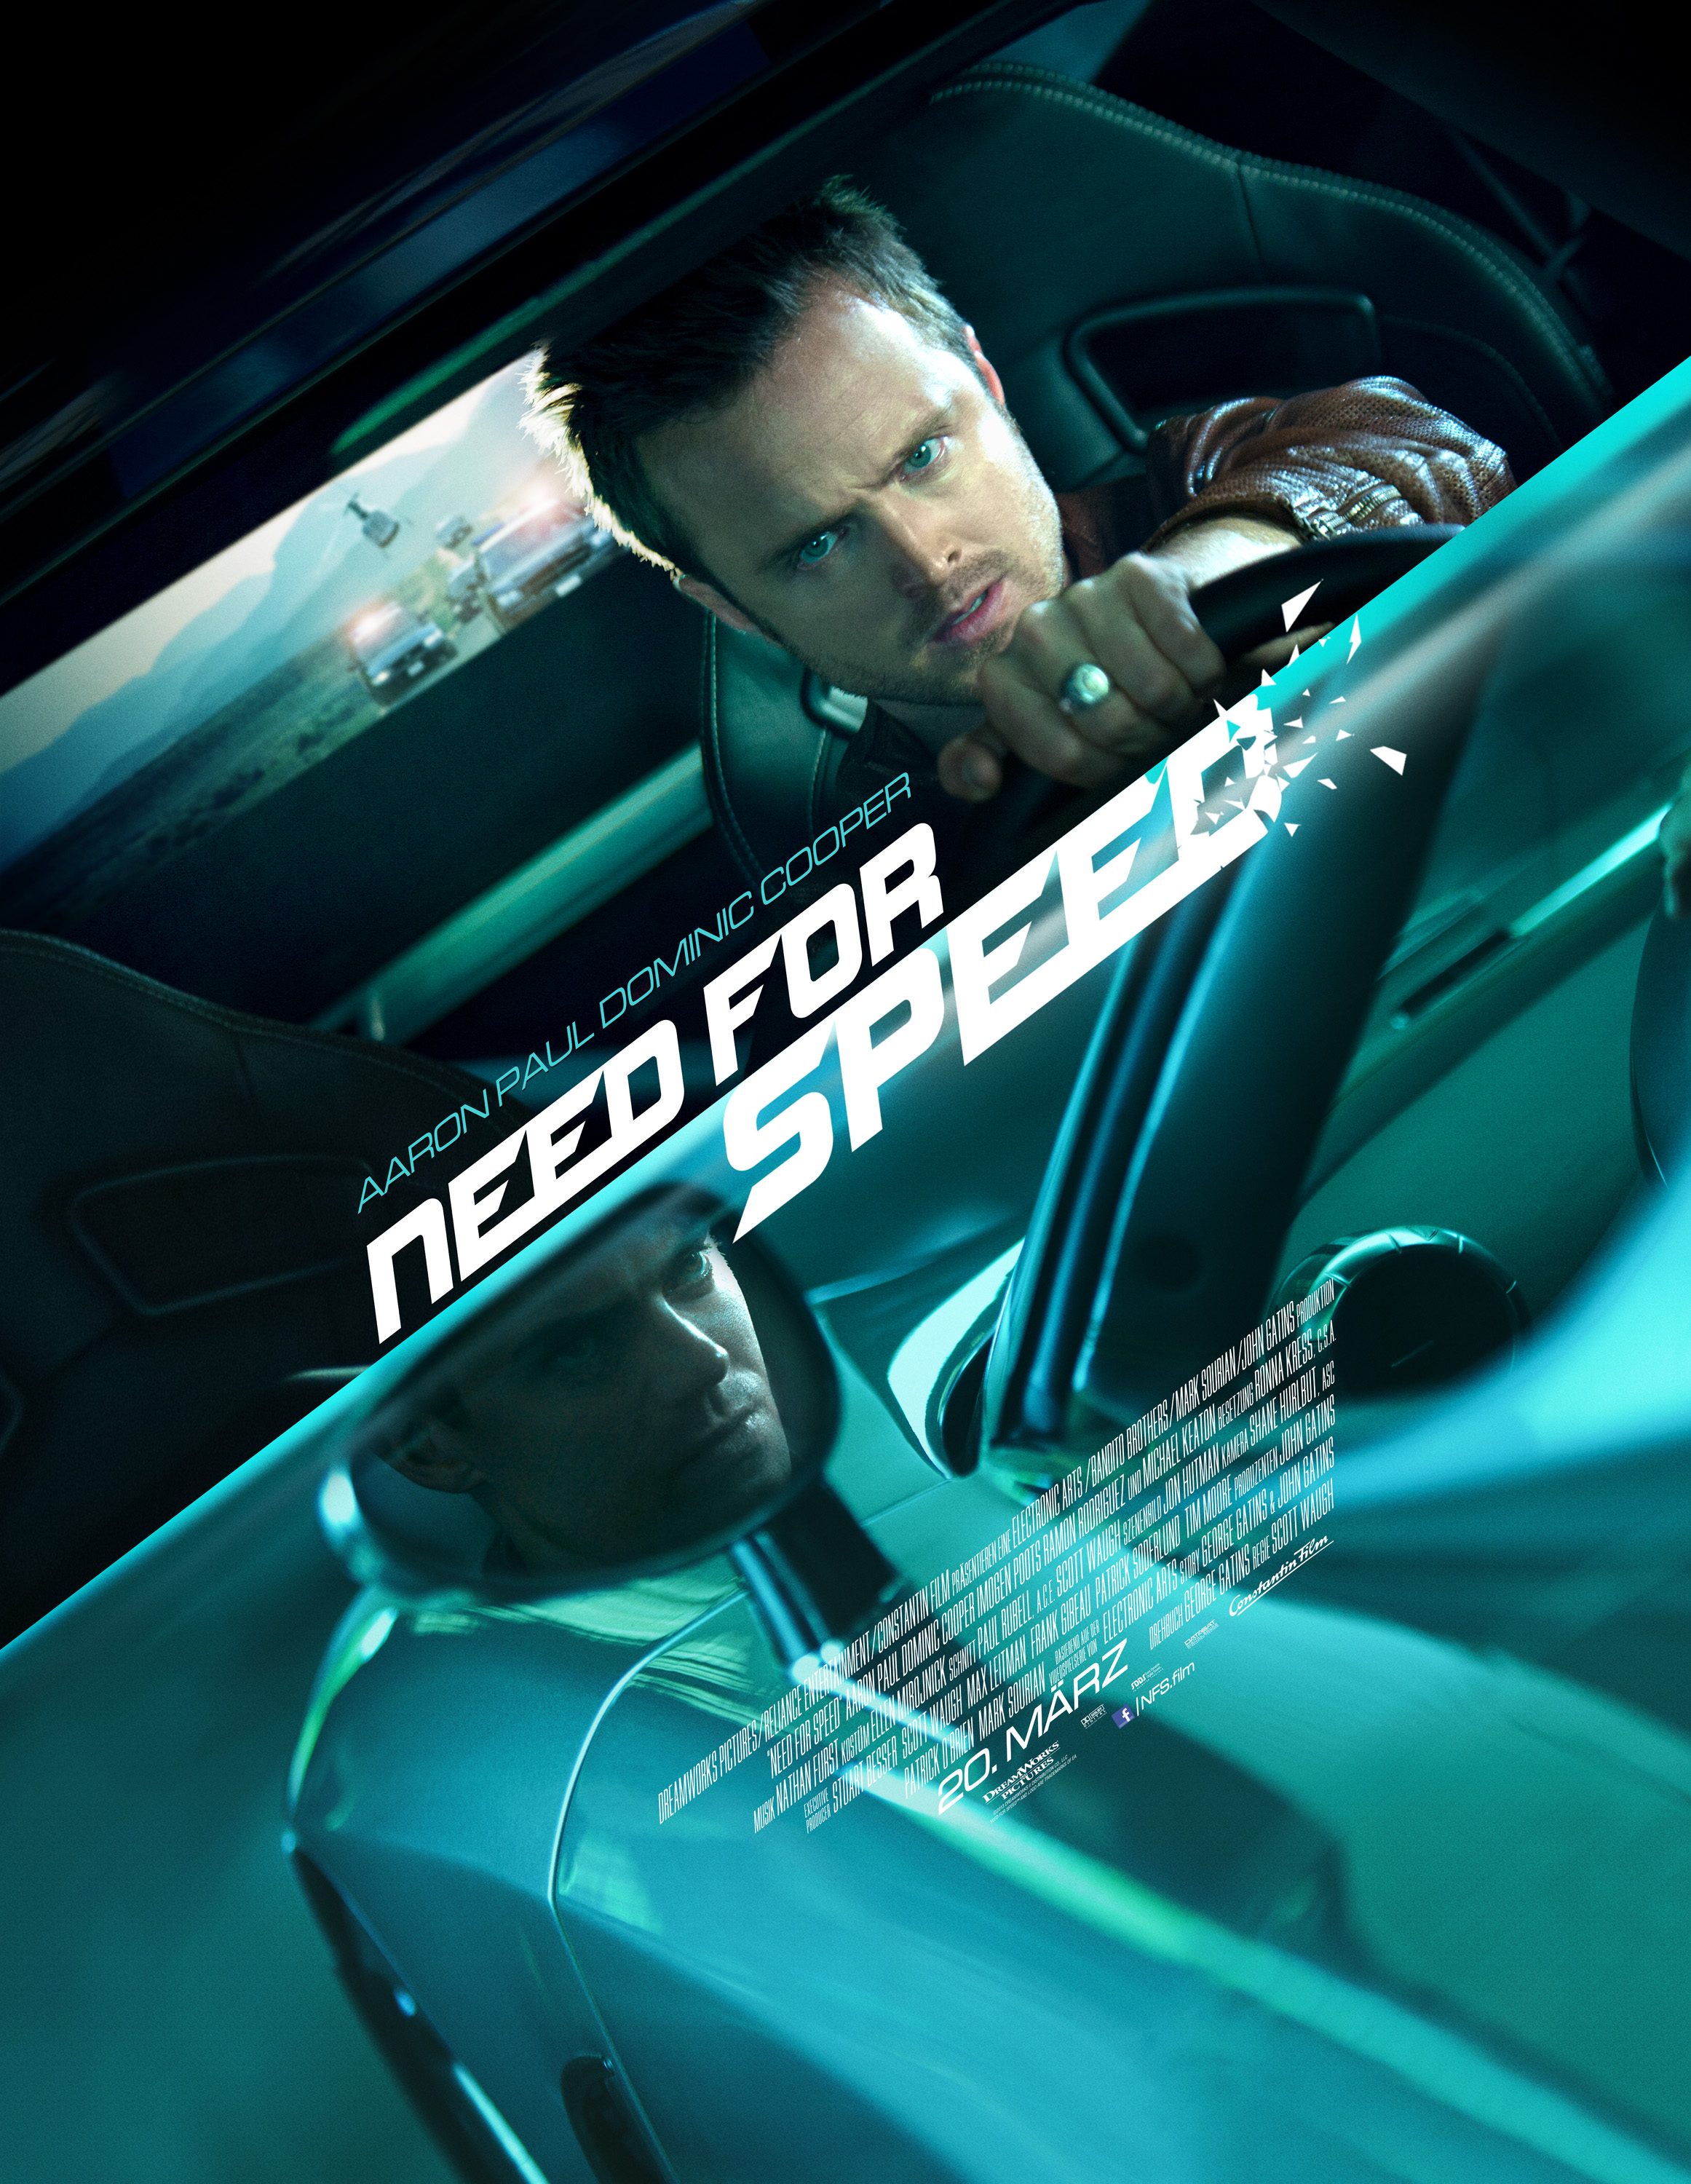 mh_NeedForSpeed_InternationalPoster_02.jpg